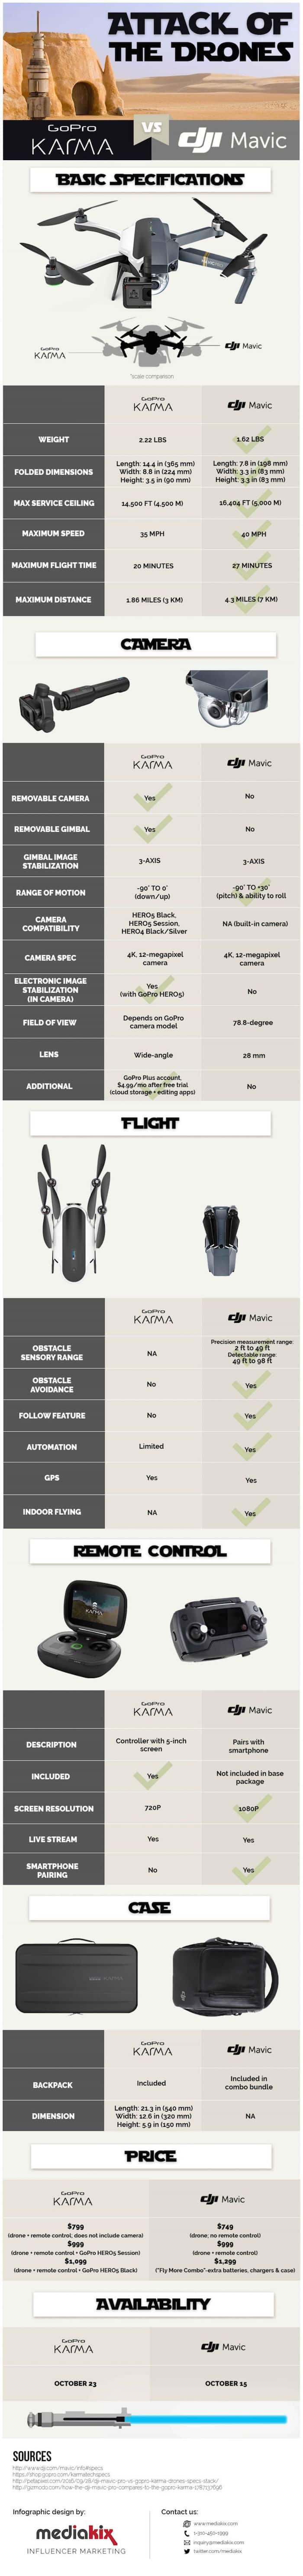 gopro-karma-dji-mavic-comparison-infographic